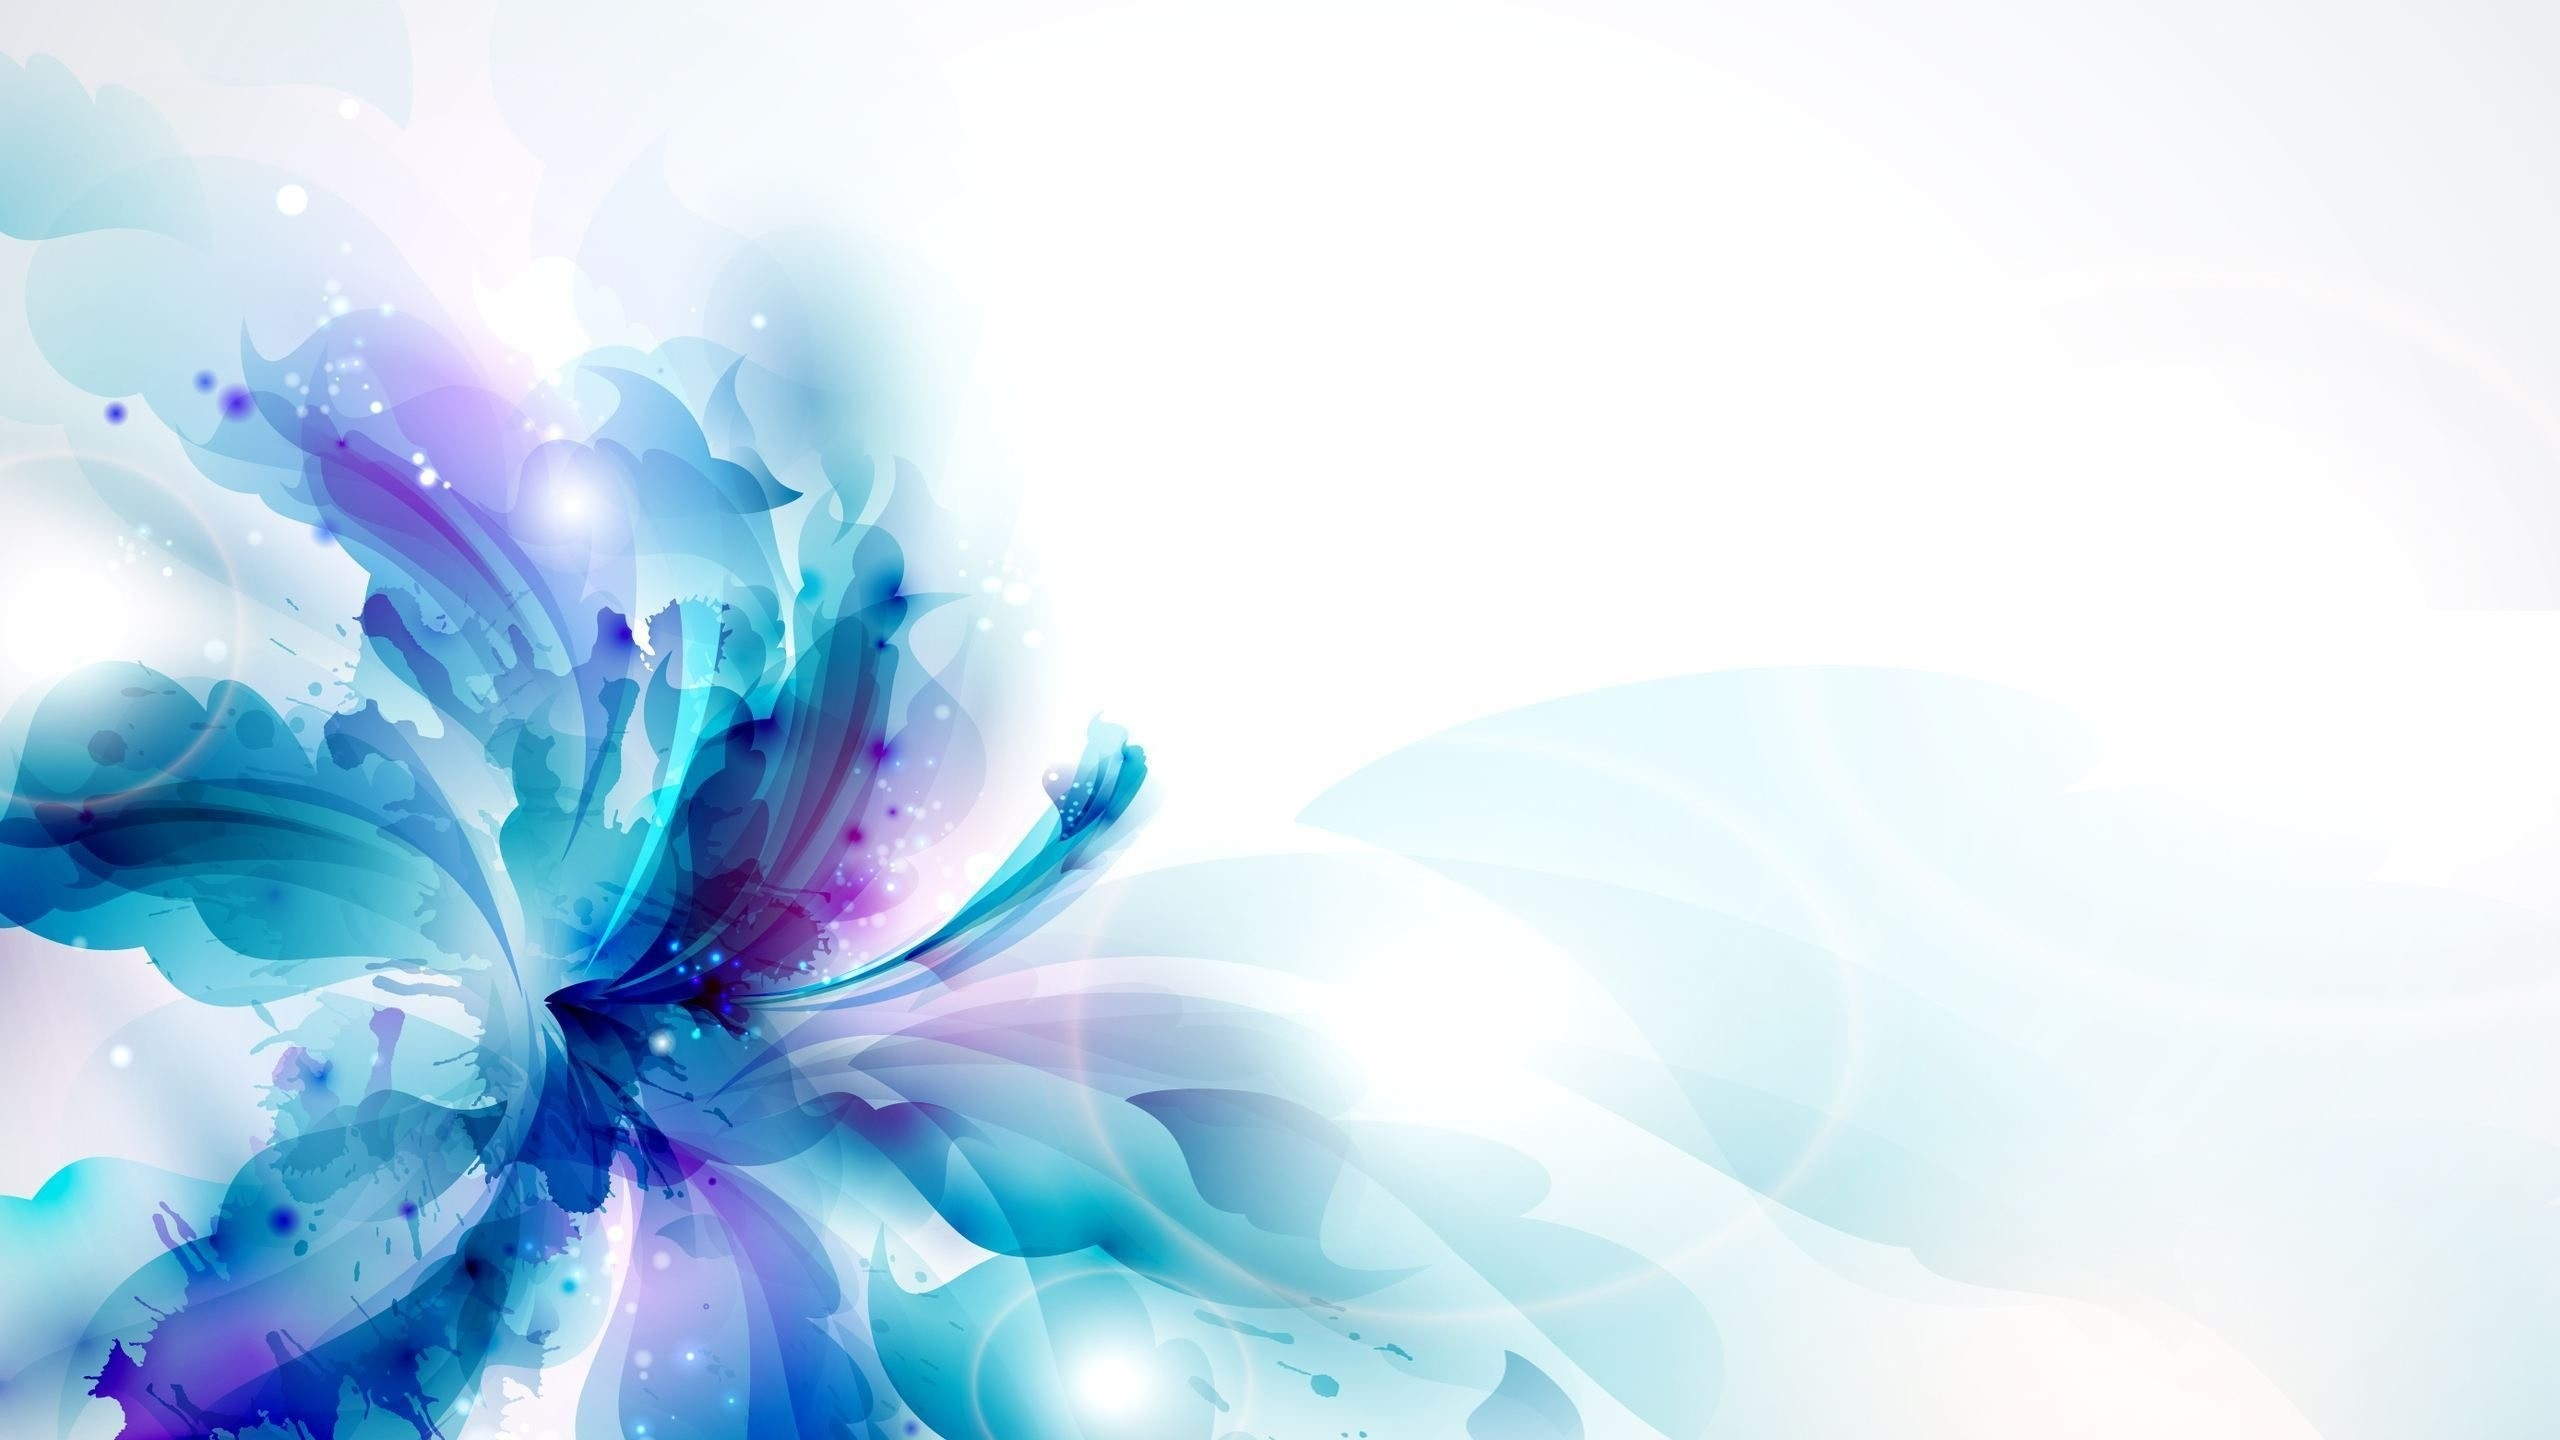 2560x1440 Download Wallpaper 2560x1440 Flower, Patches, Drawing, Colorful